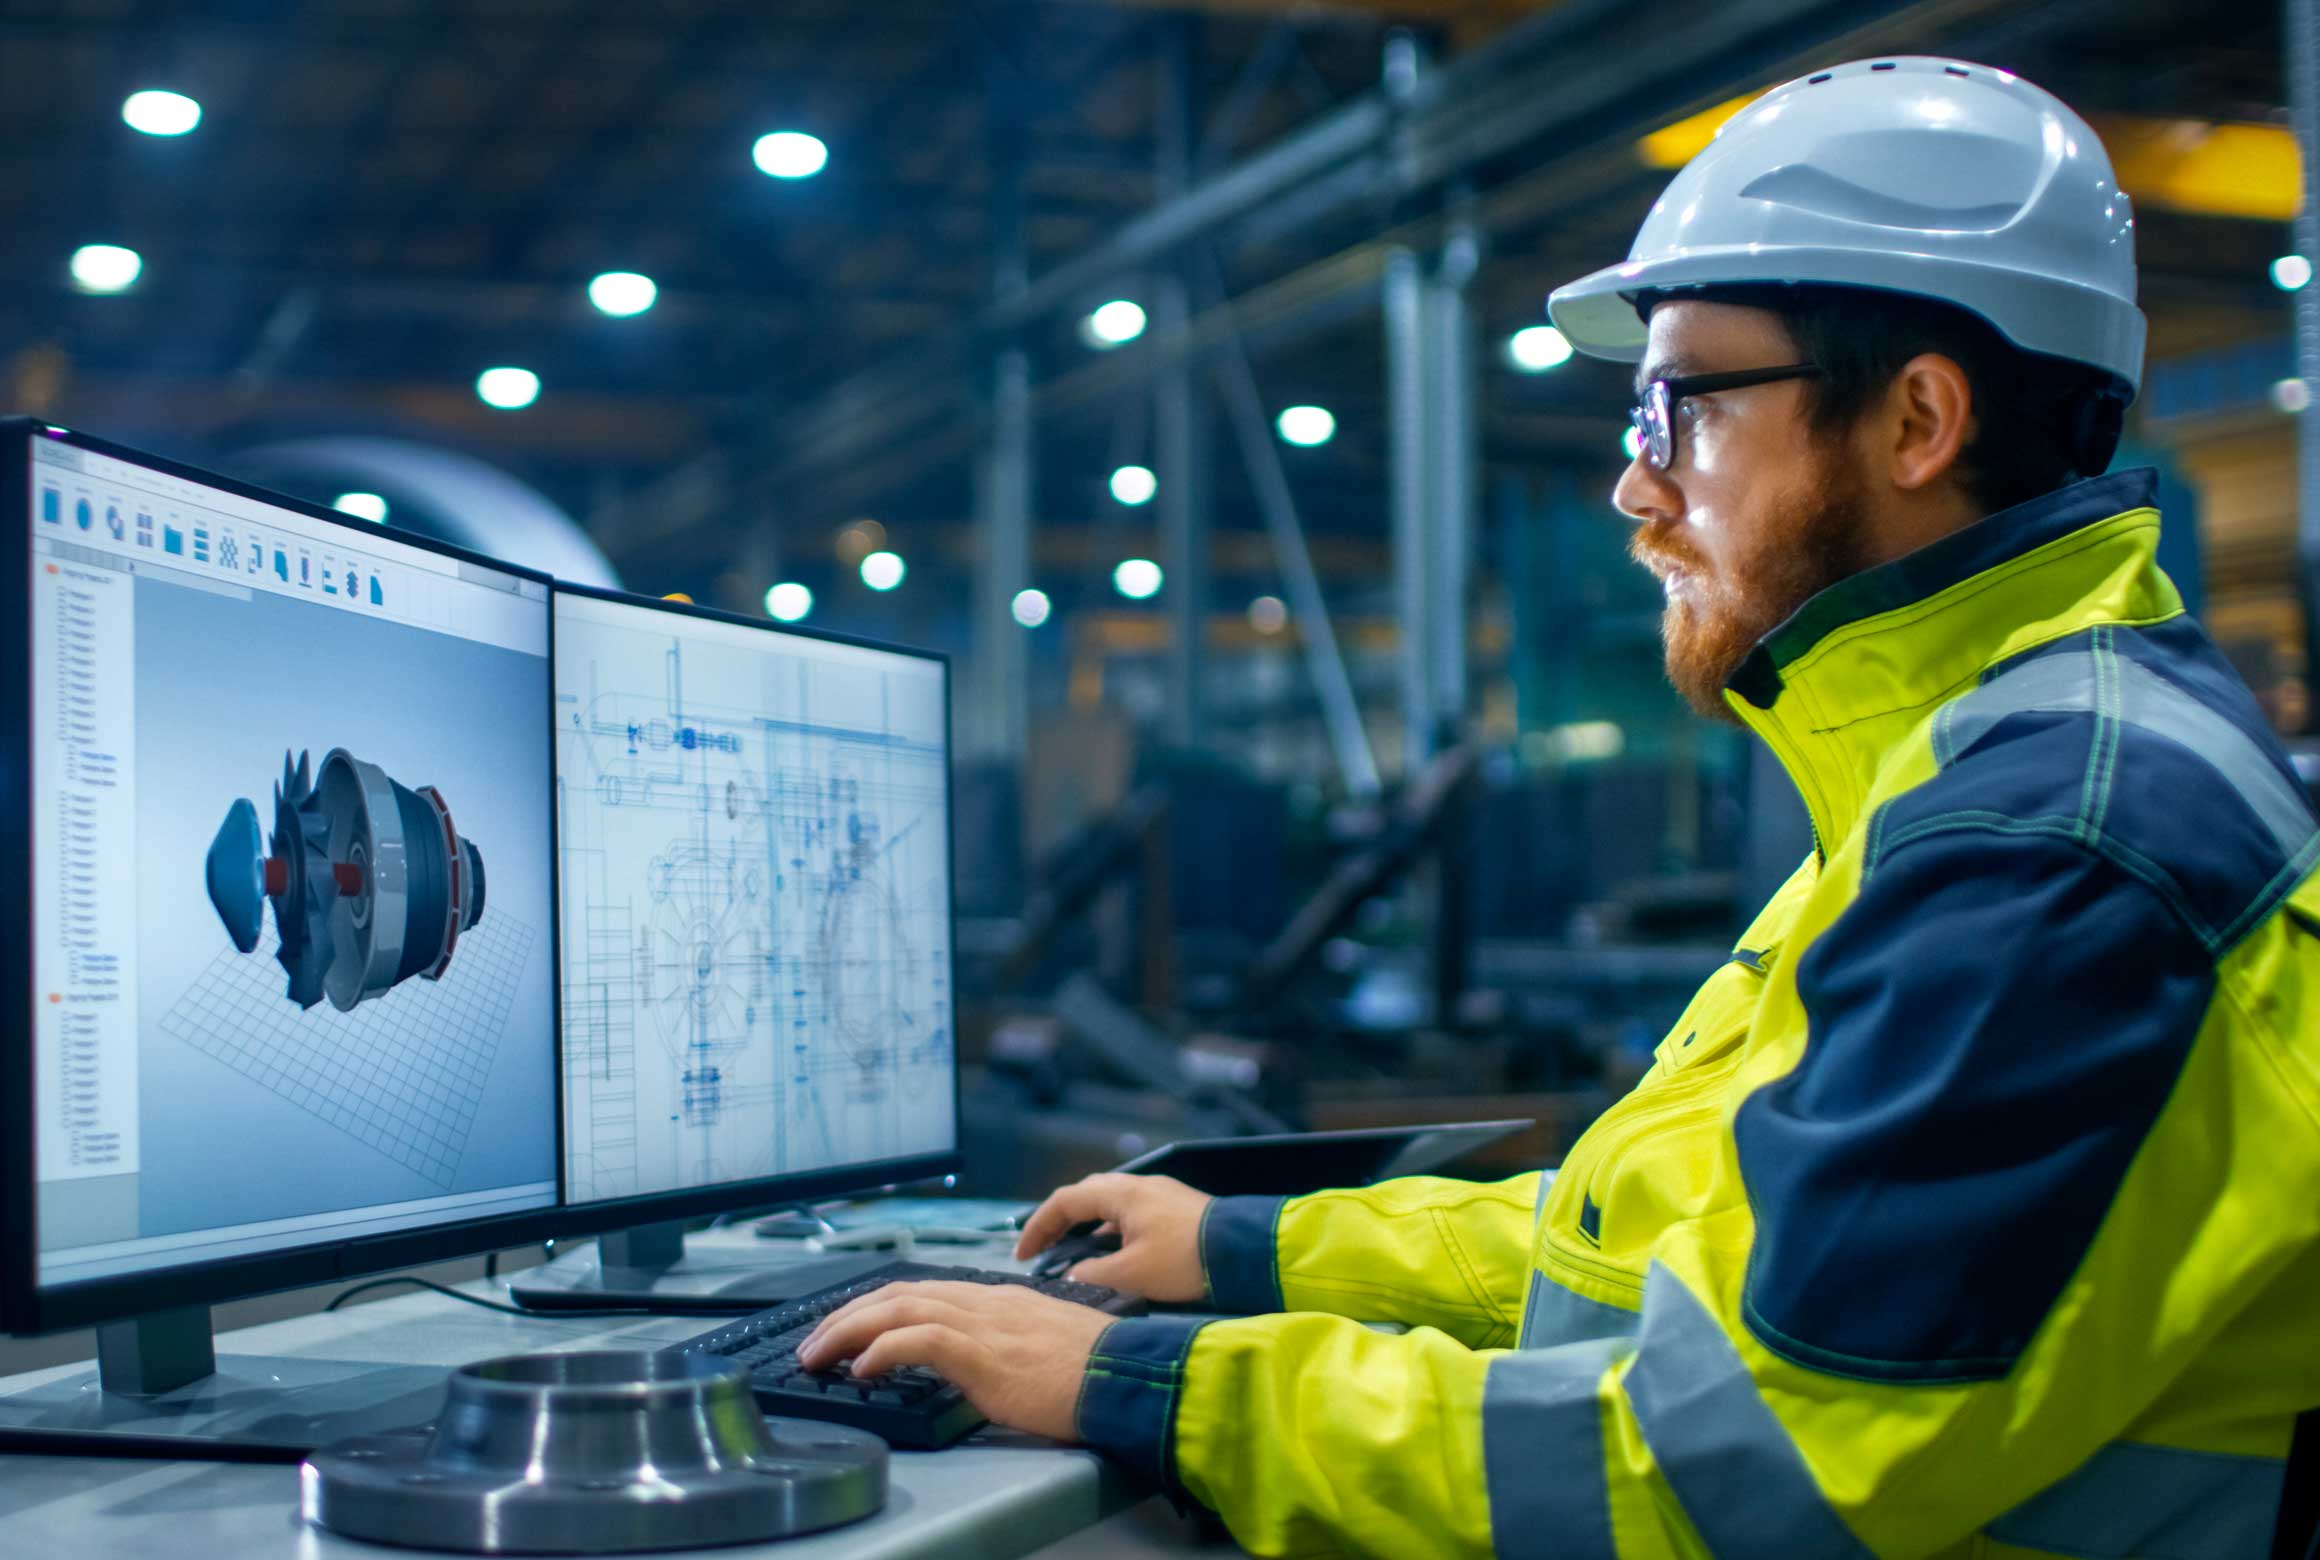 engineer using technology equipment in manufacturing